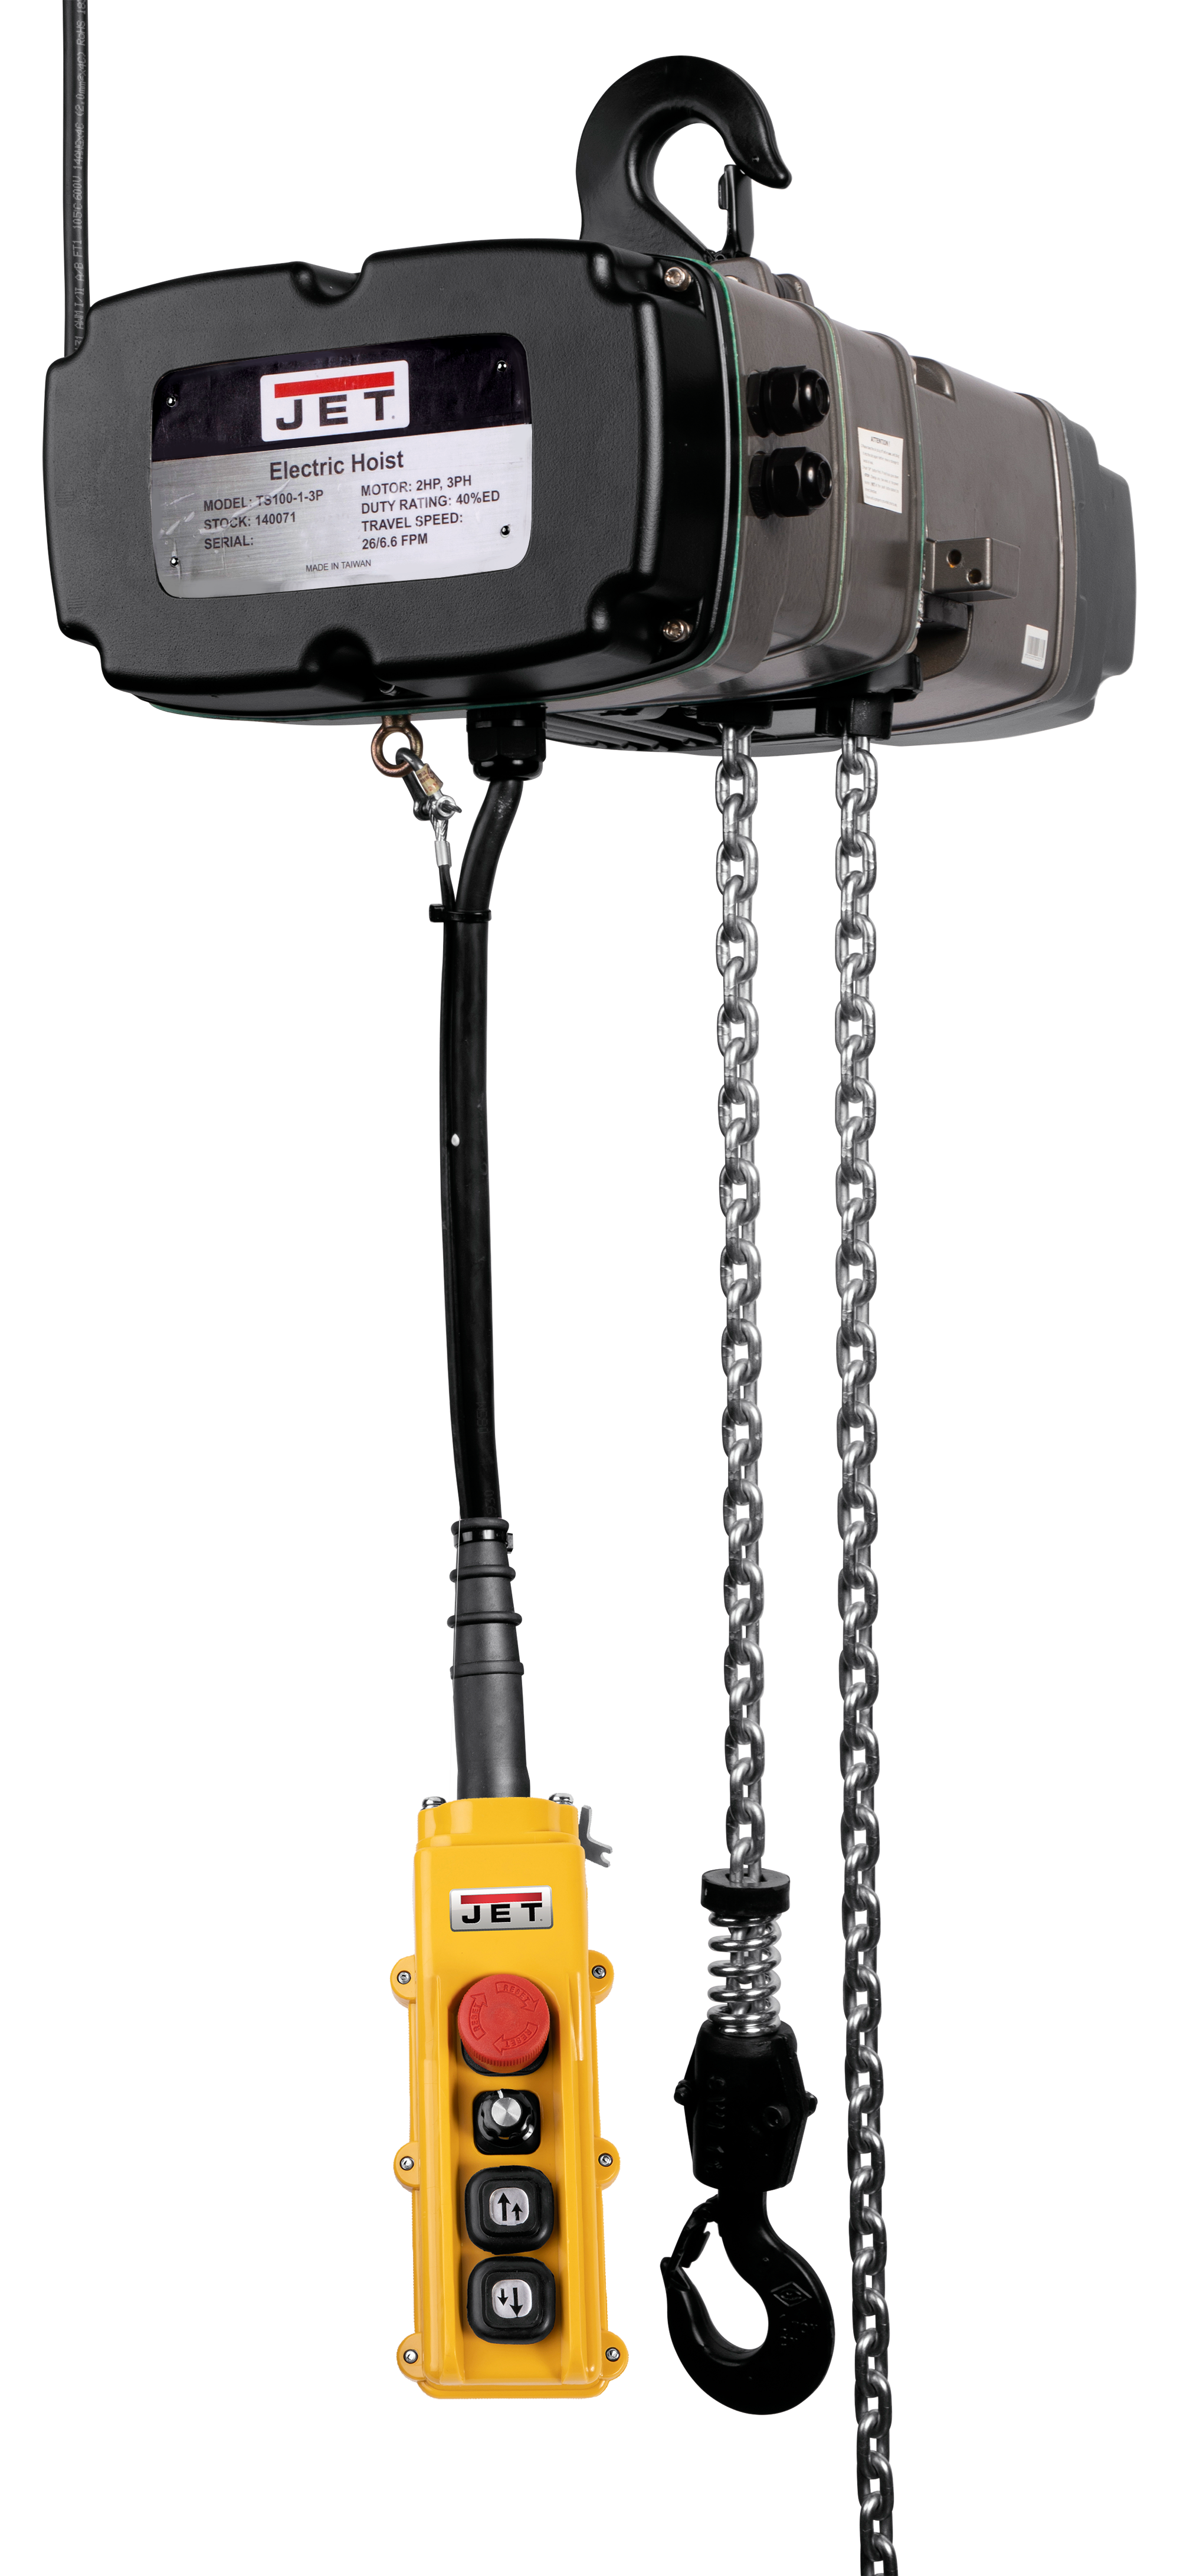 TS100-230-010,1-Ton Two Speed Electric Chain Hoist  3-Phase 10' Lift